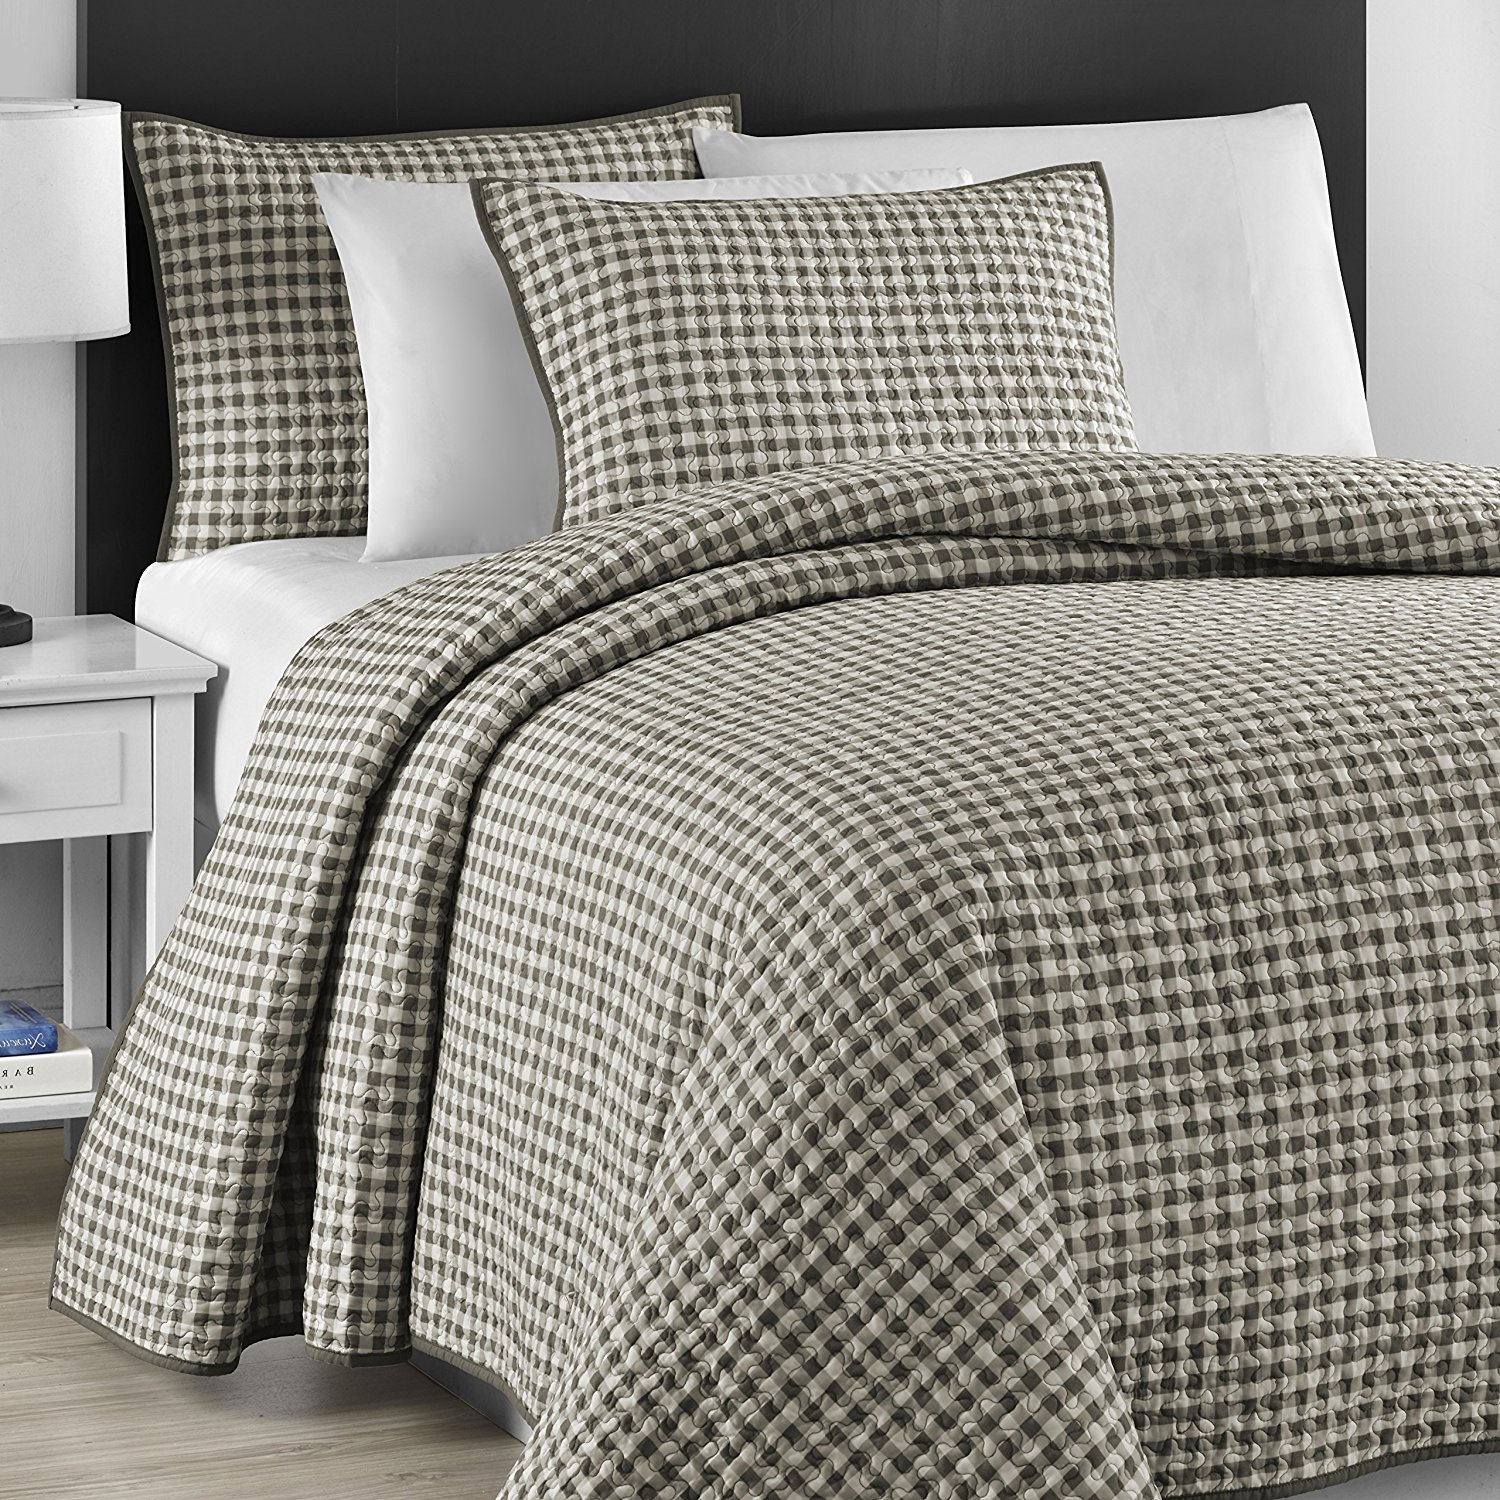 eLuxurySupply Zaria Quilted Coverlet Set With Stitched Pattern 3 Pieces by ExceptionalSheets